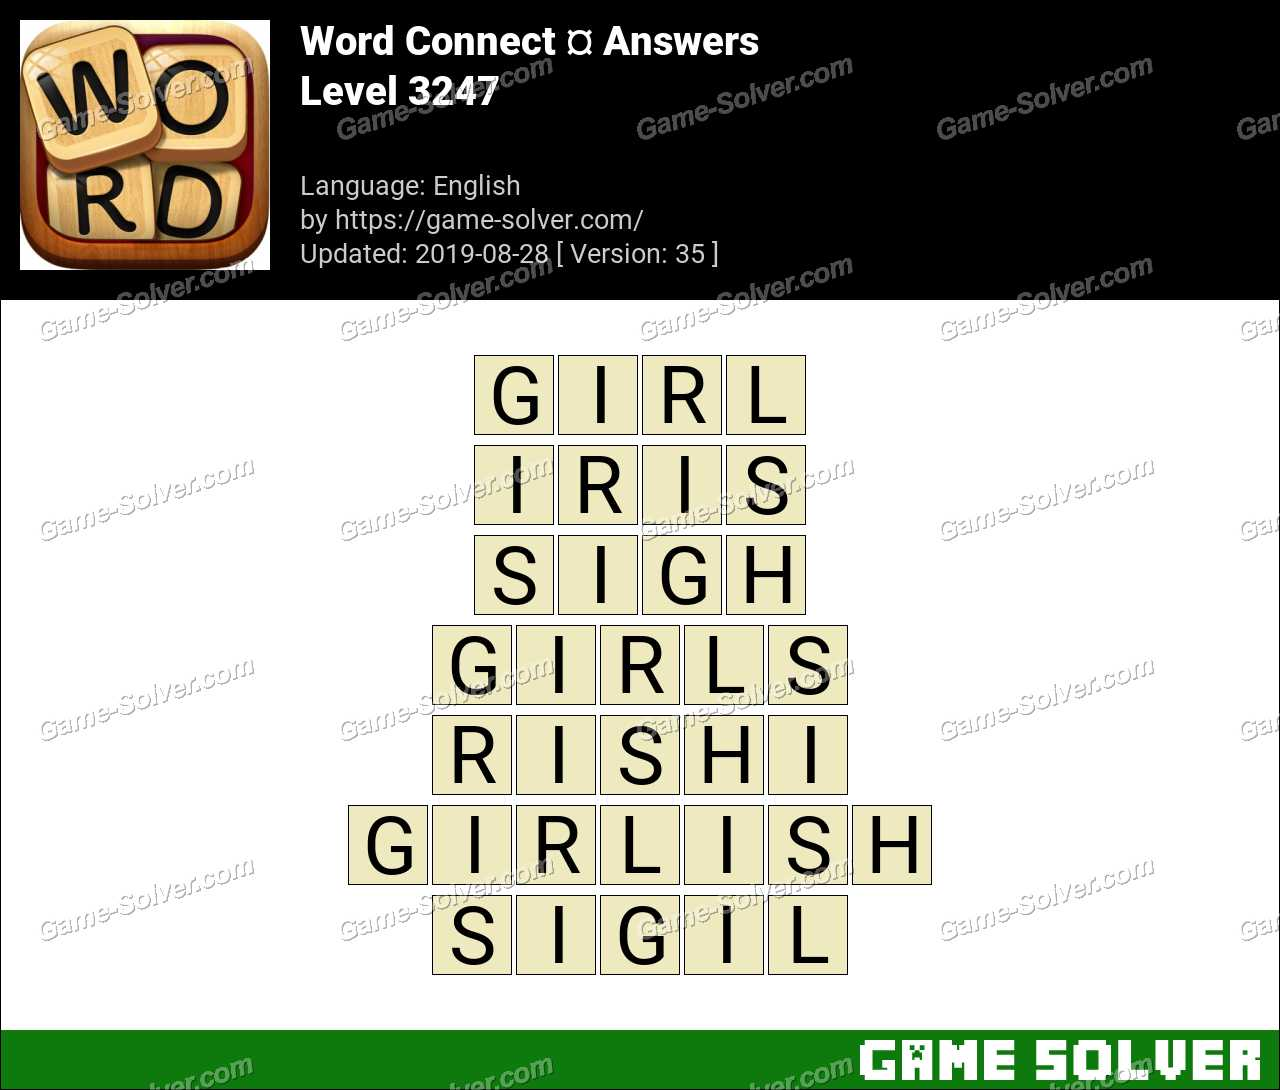 Word Connect Level 3247 Answers